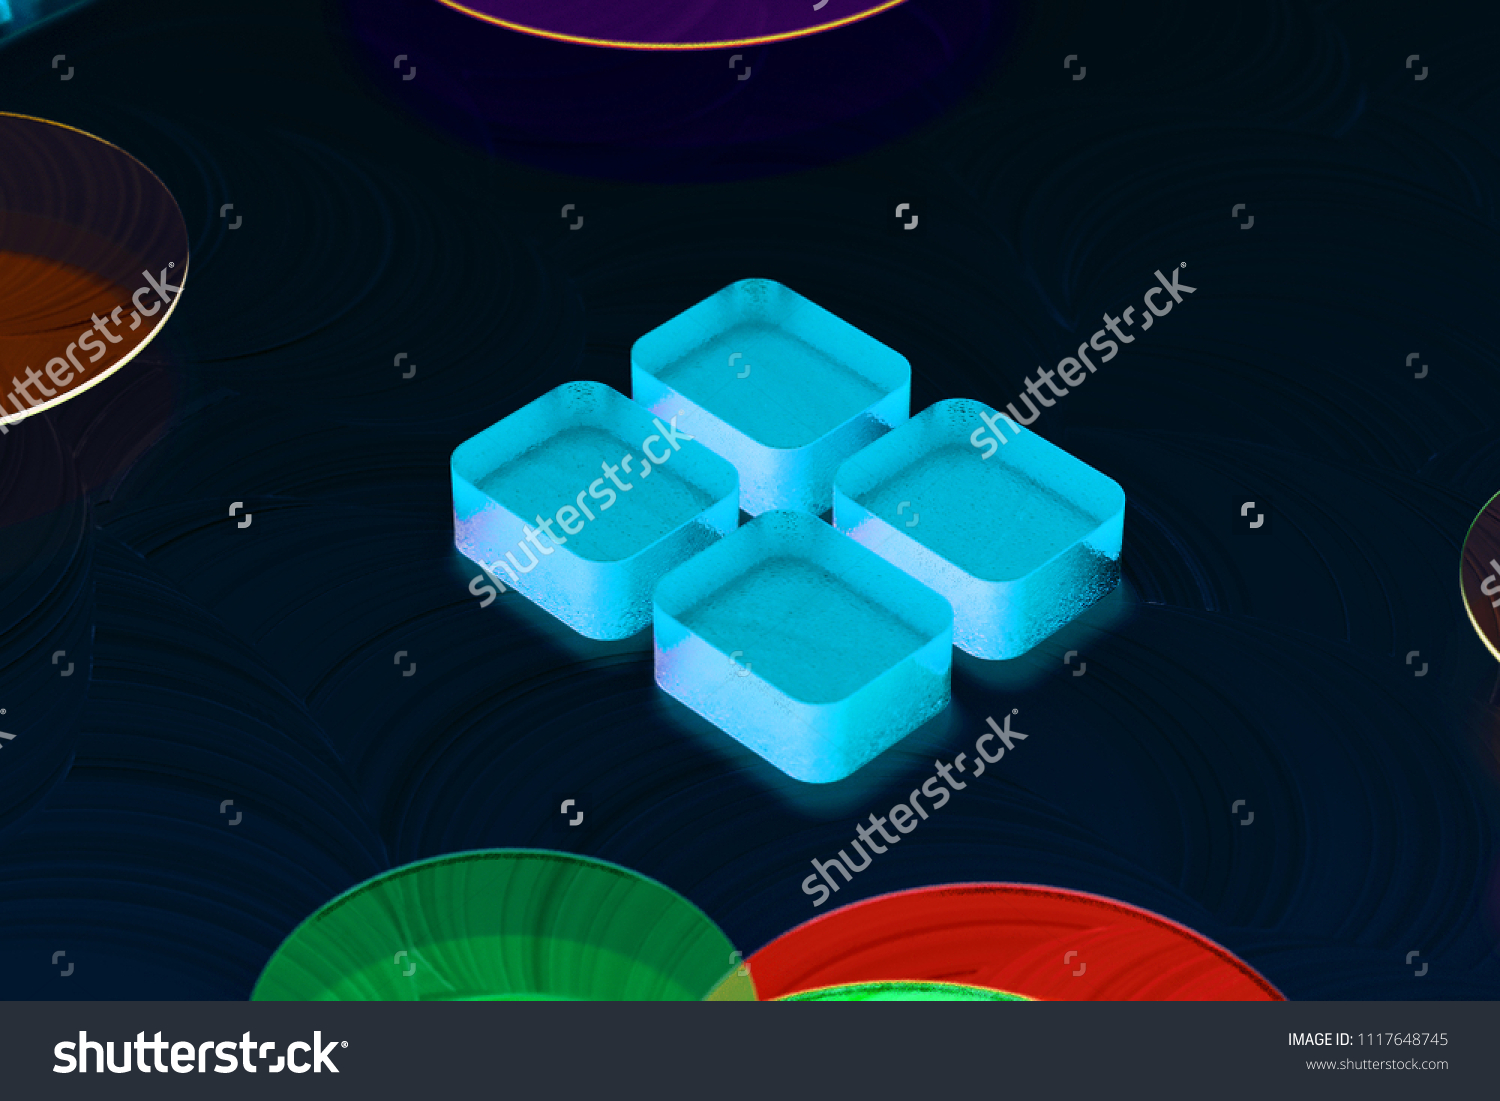 Blue Large Text Editor Icon On Stock Illustration 1117648745